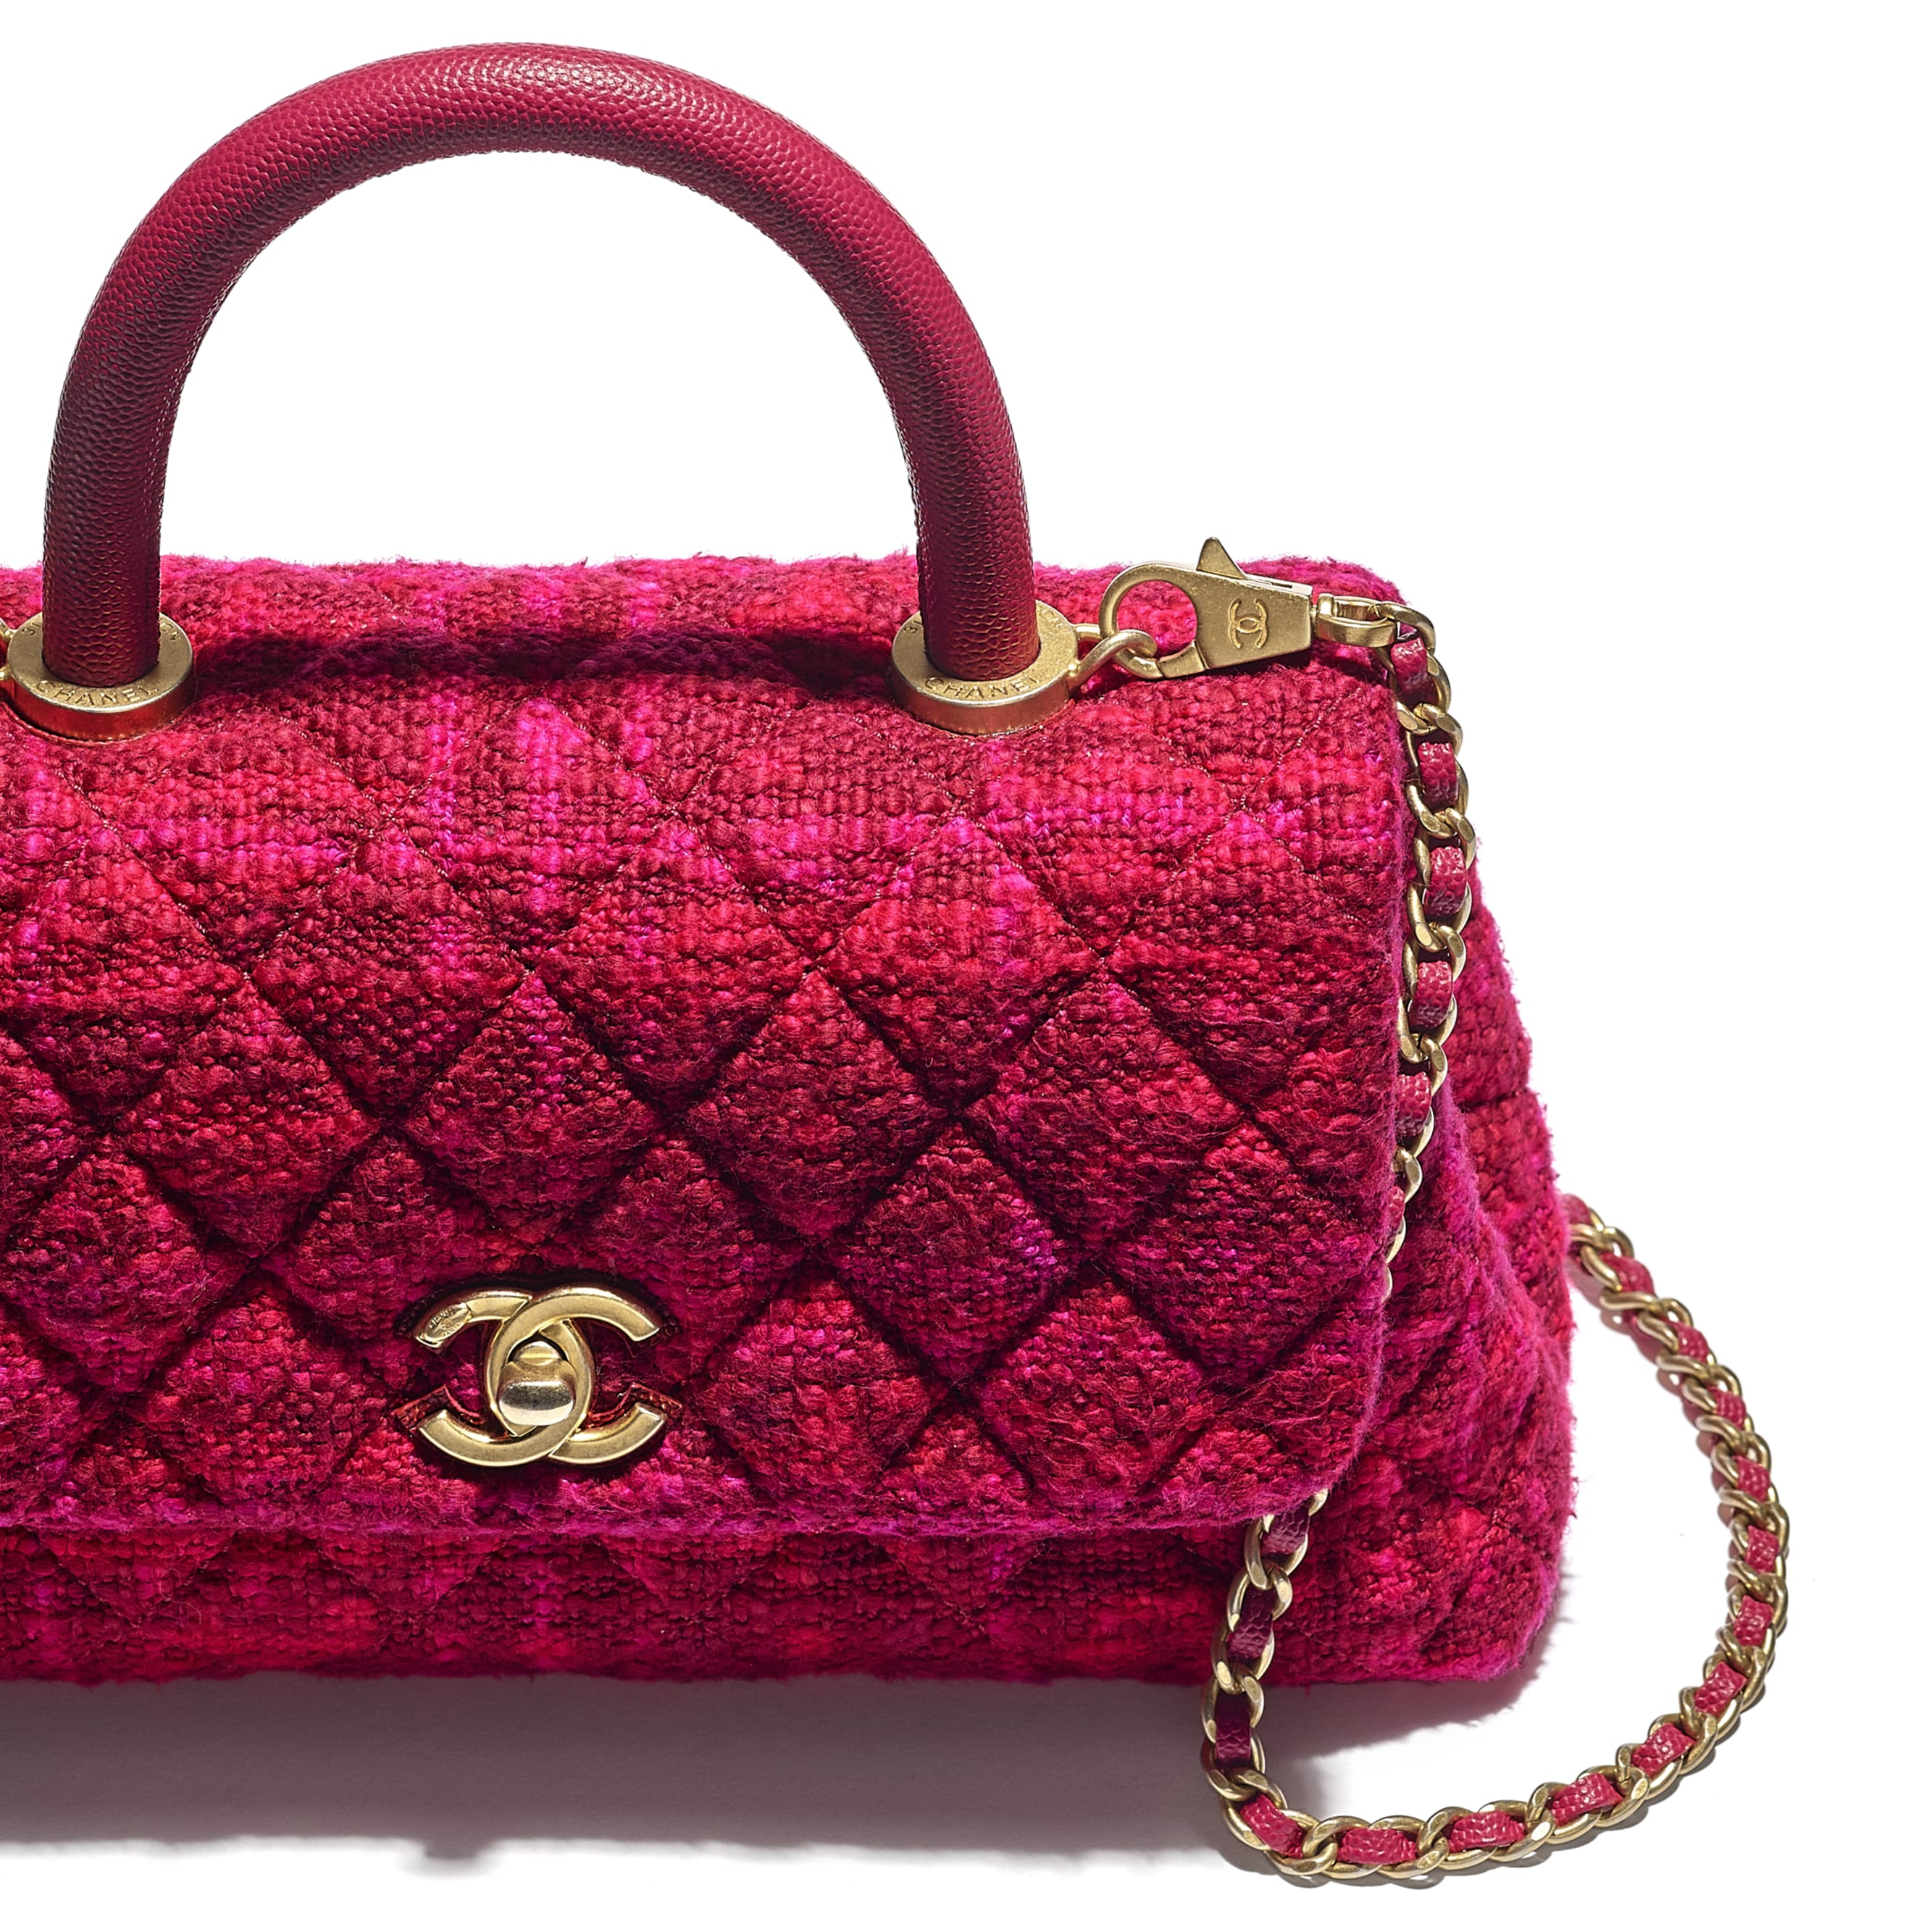 Small Flap Bag with Top Handle - Fuchsia & Red - Cotton Tweed, Grained Calfskin & Gold-Tone Metal - CHANEL - Extra view - see standard sized version